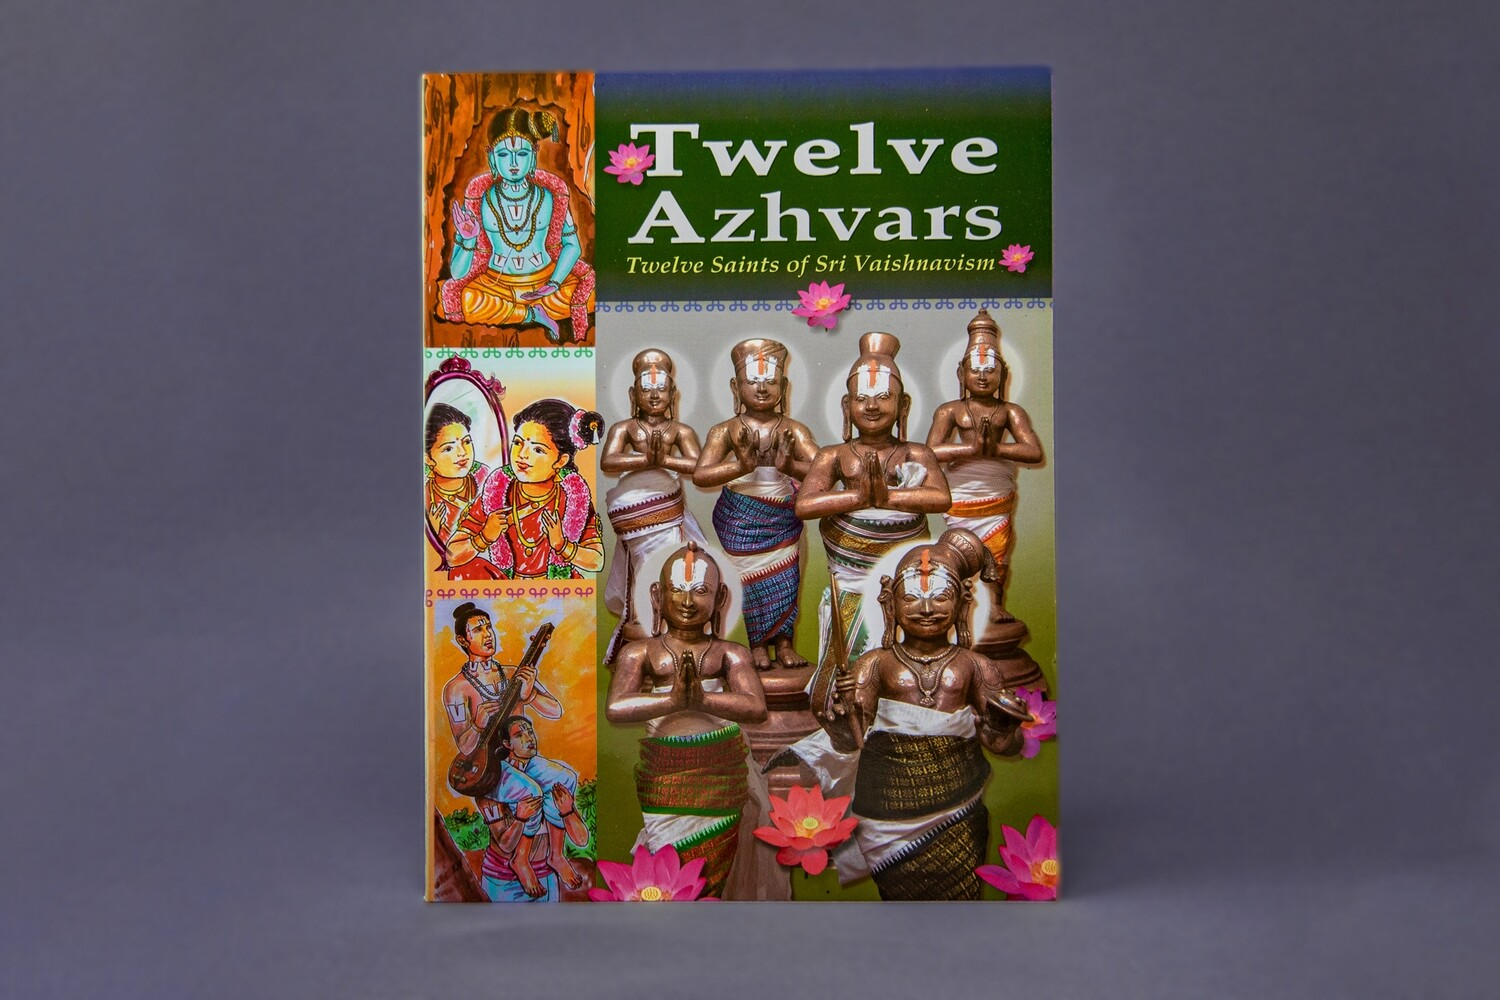 Twelve Azhvars. Twelve Saints of Sri Vaishnavism